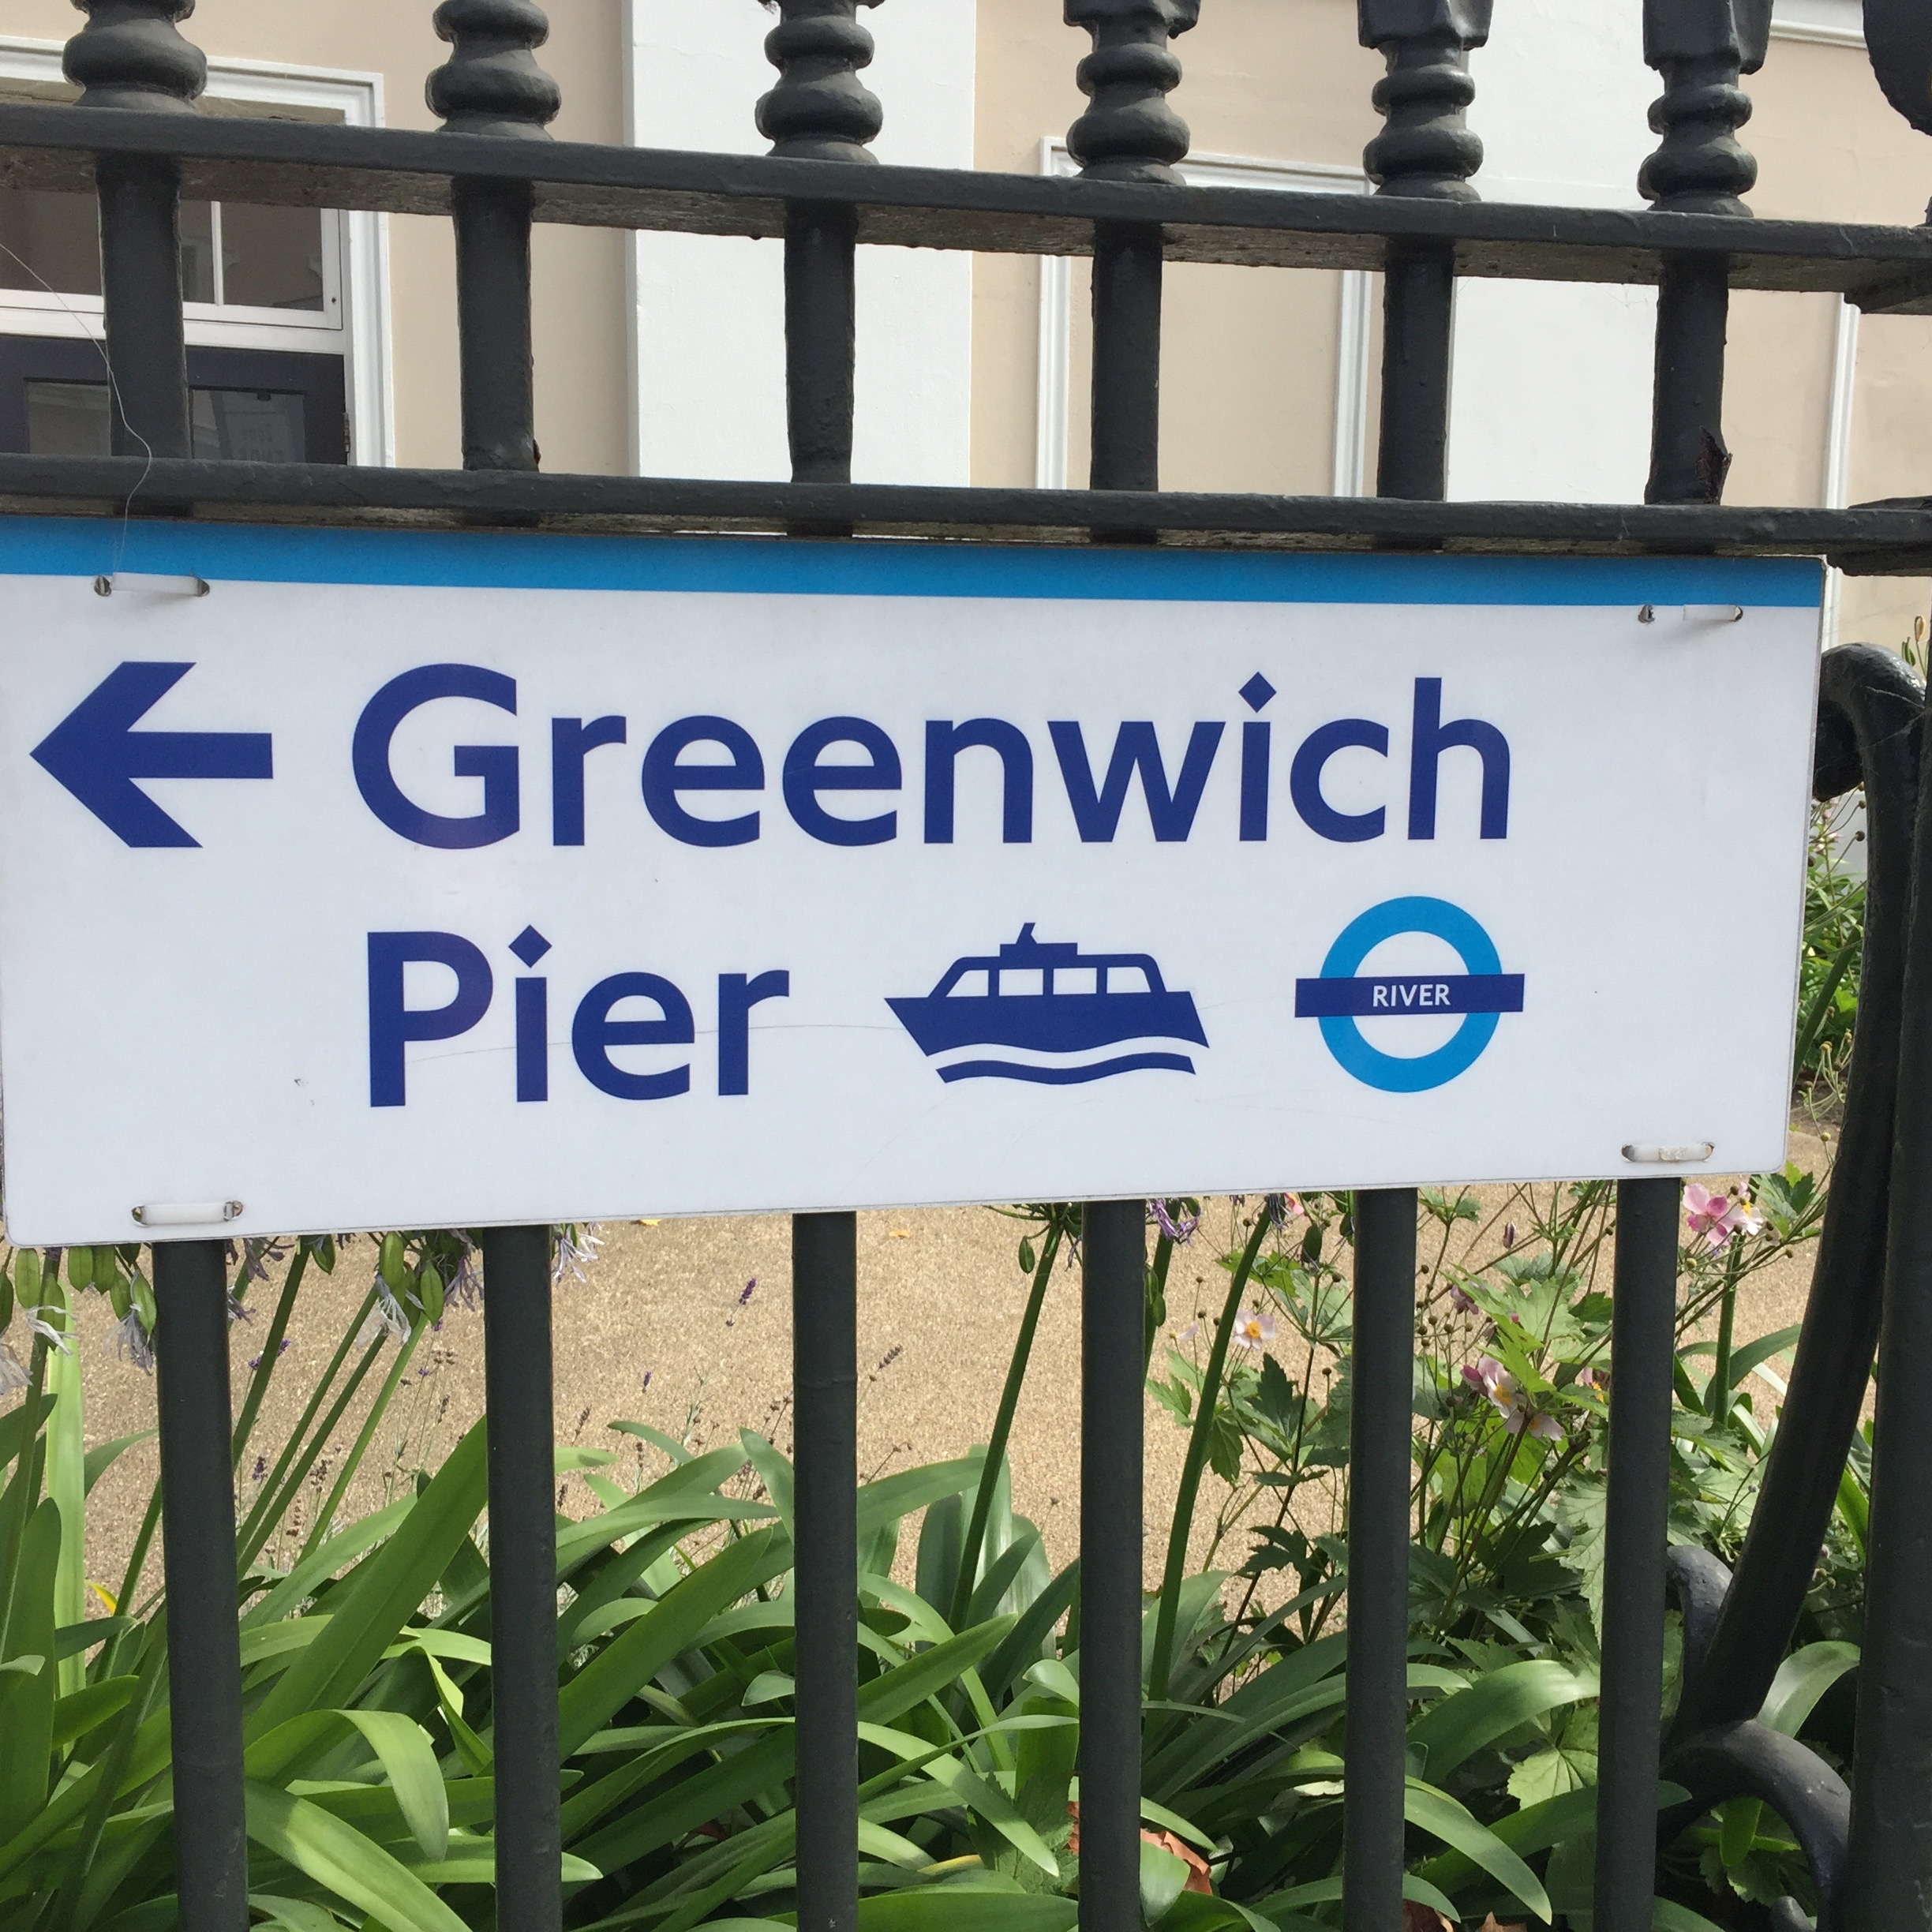 A visit to Greenwich by riverboat